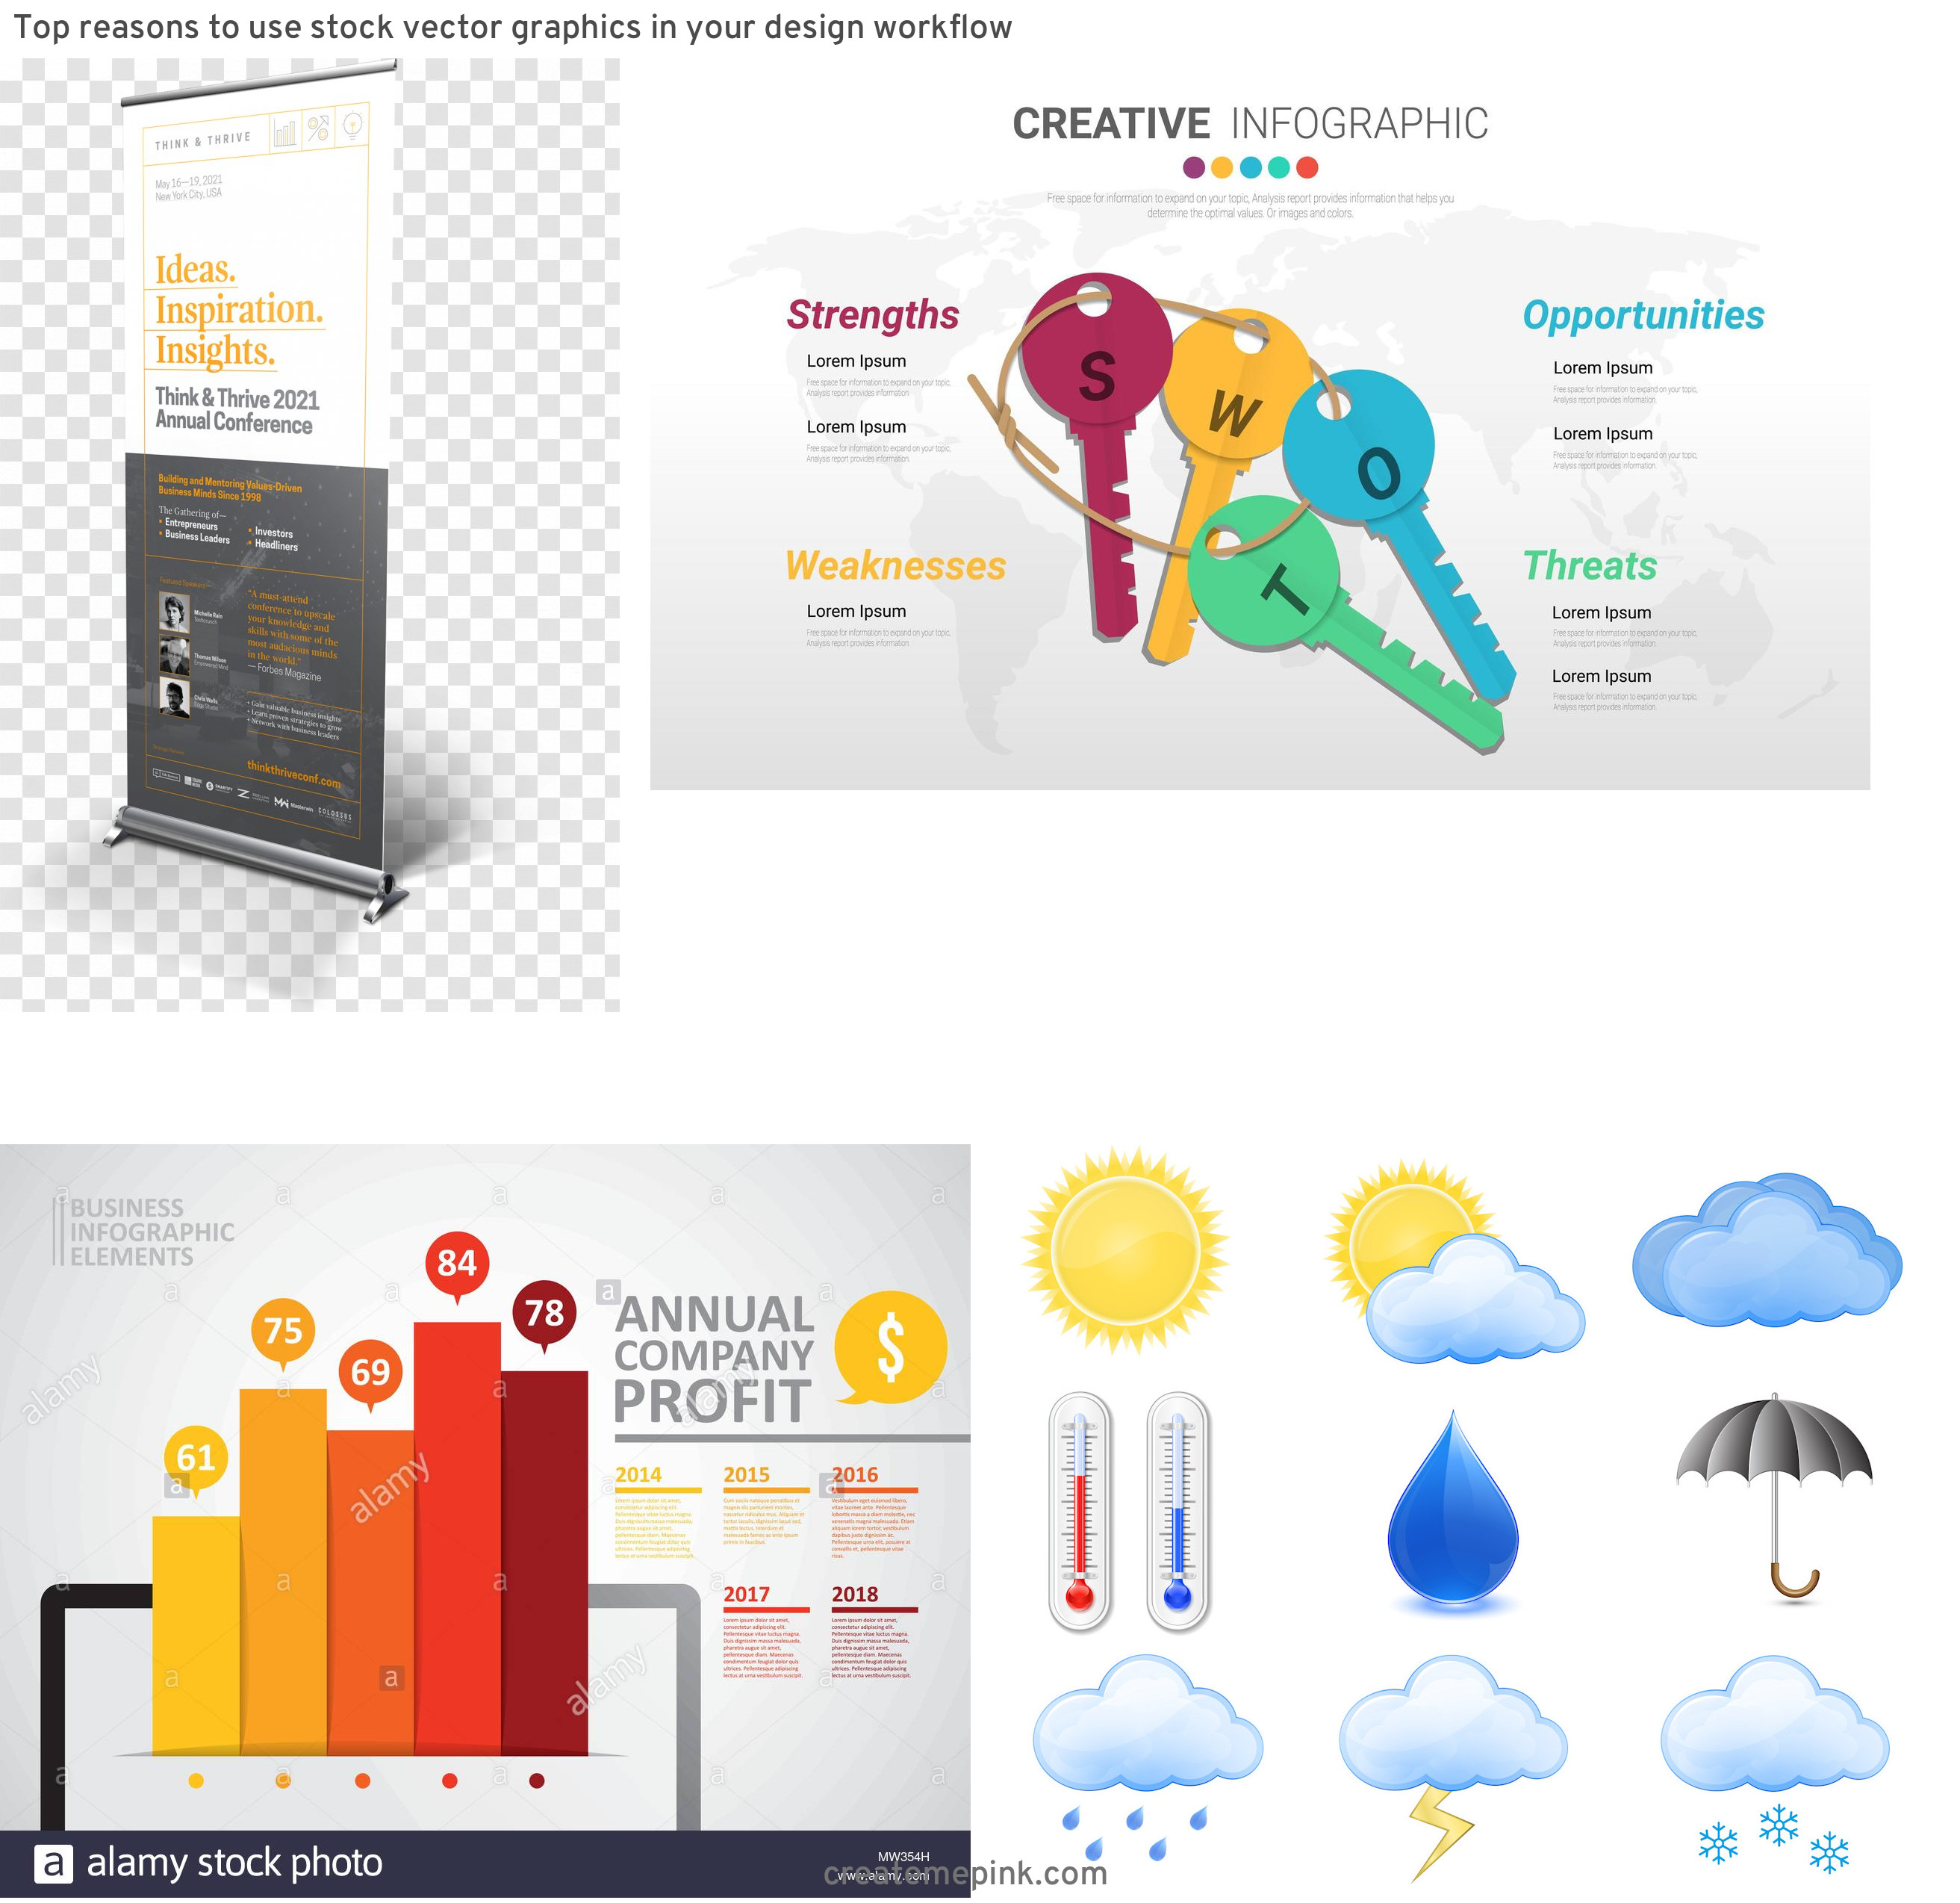 Vector Graphics Values: Top Reasons To Use Stock Vector Graphics In Your Design Workflow